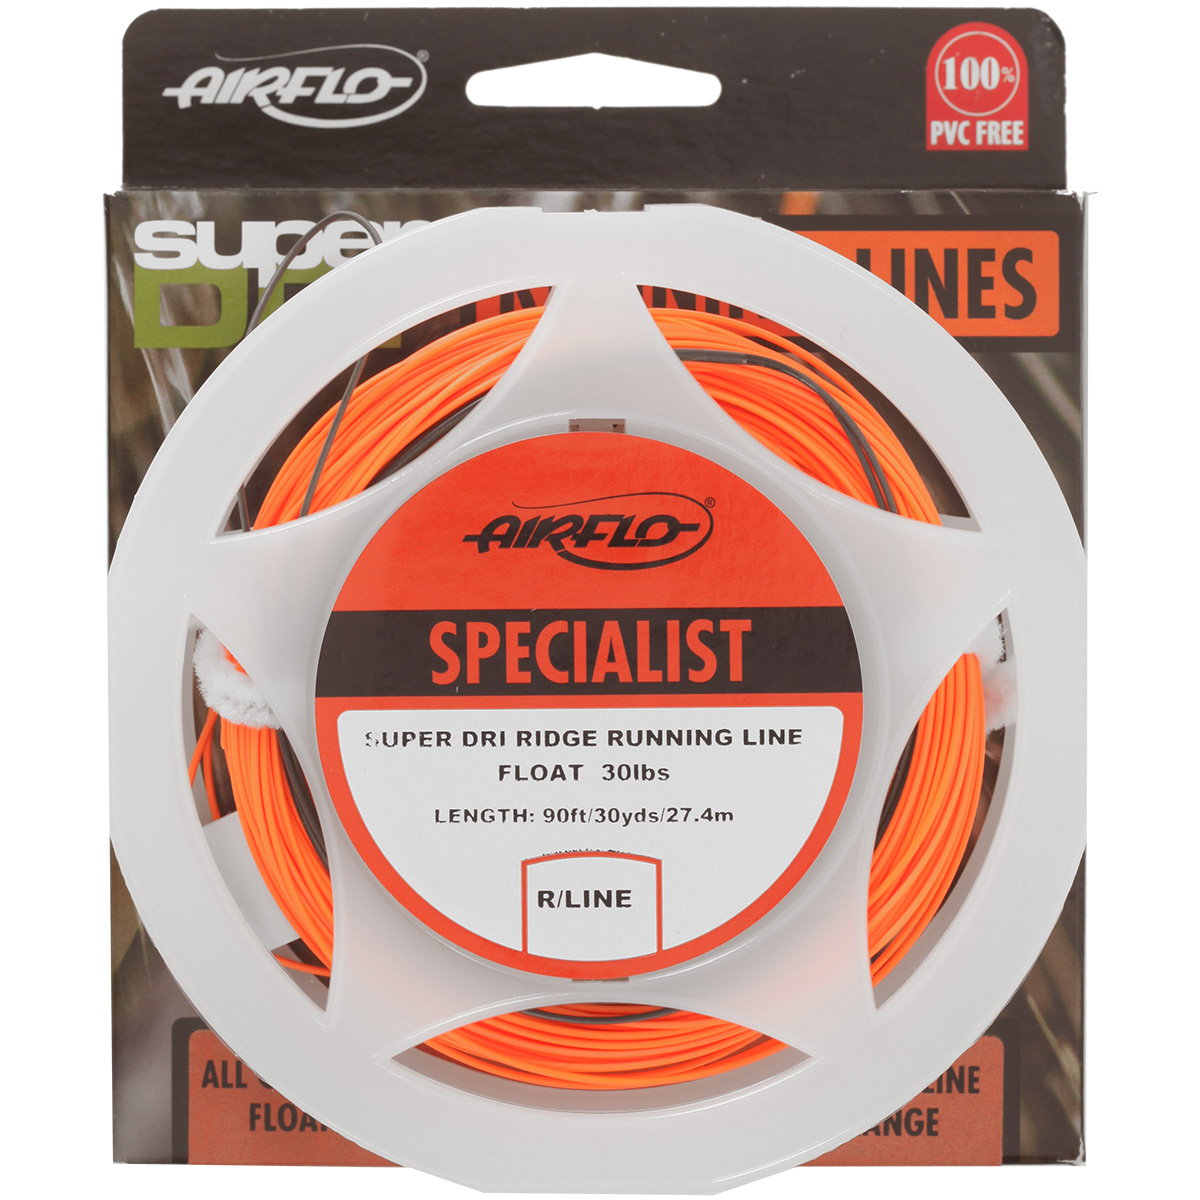 Airflo Super Dri Ridge Running Line